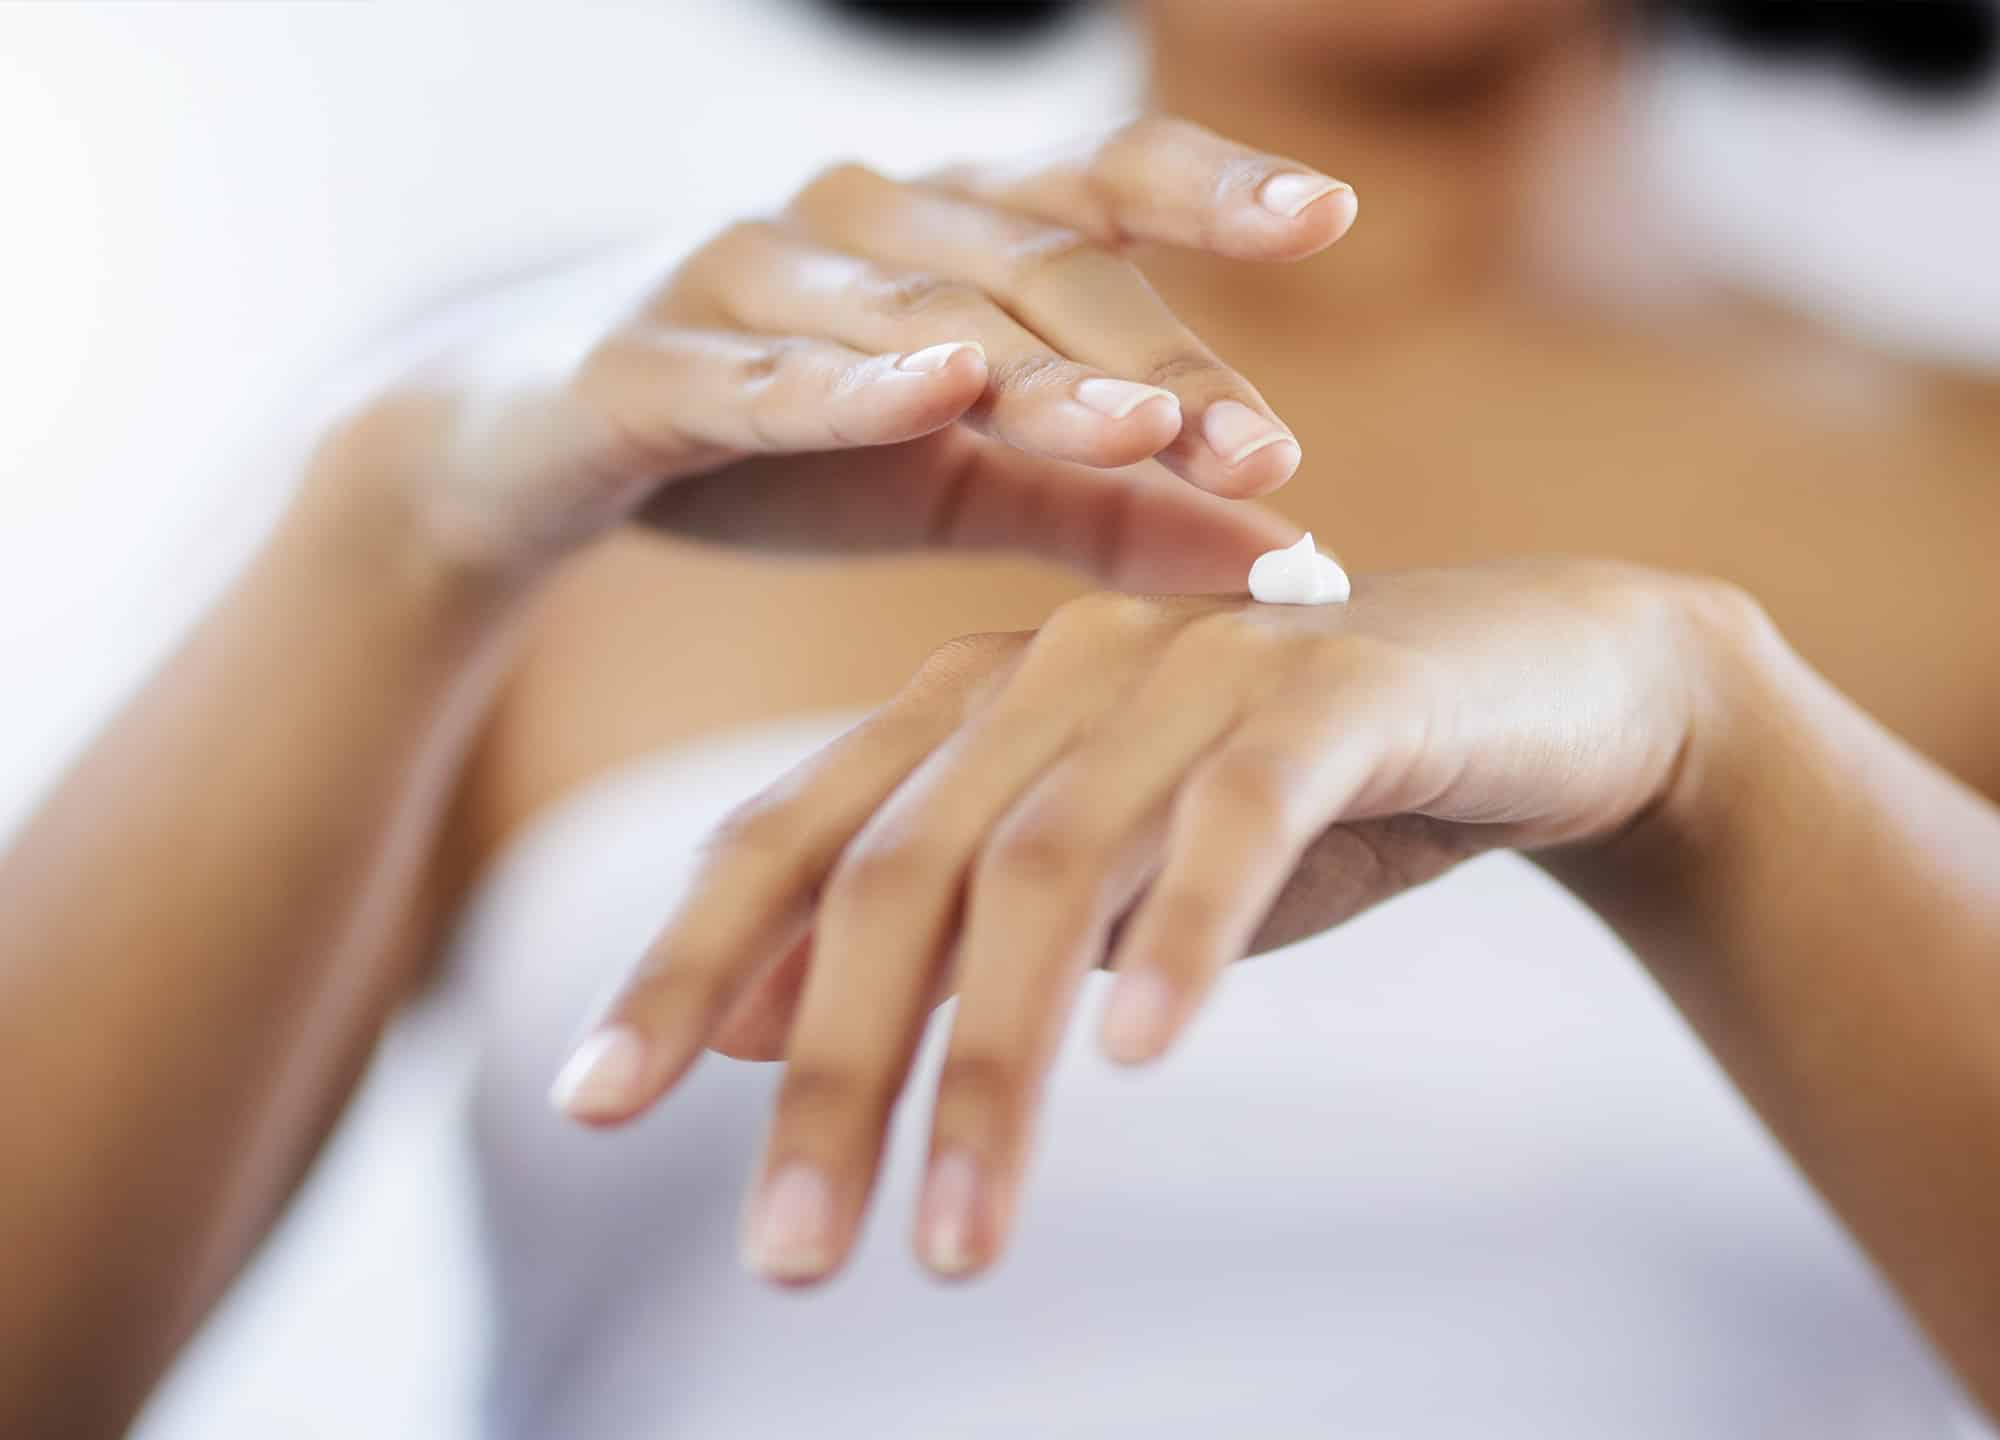 The Ultimate Guide To Anti Aging Your Hands Realself News